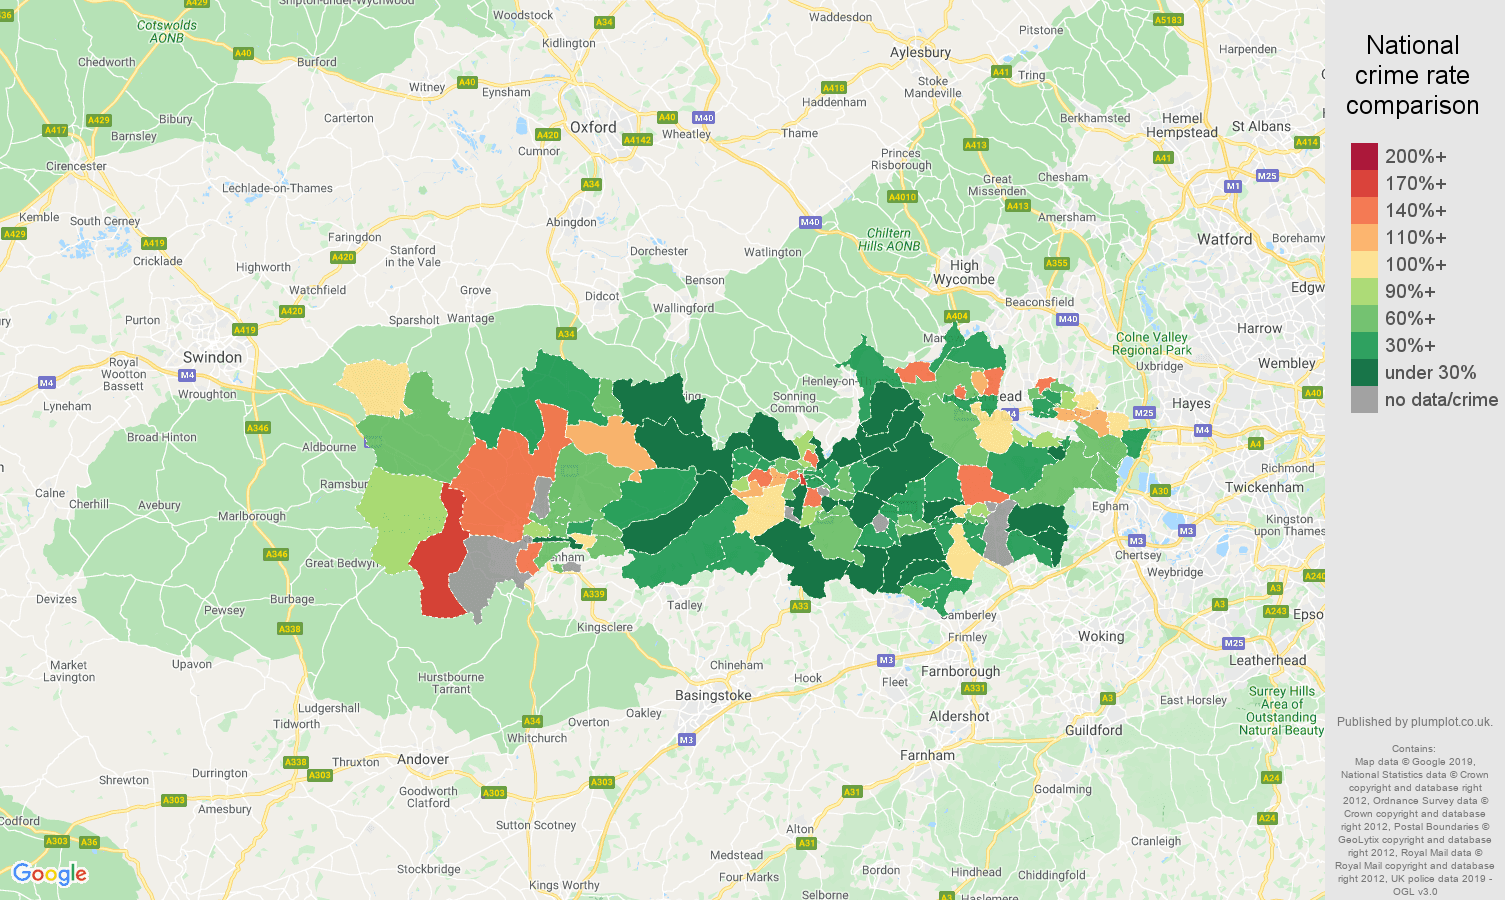 Berkshire other crime rate comparison map